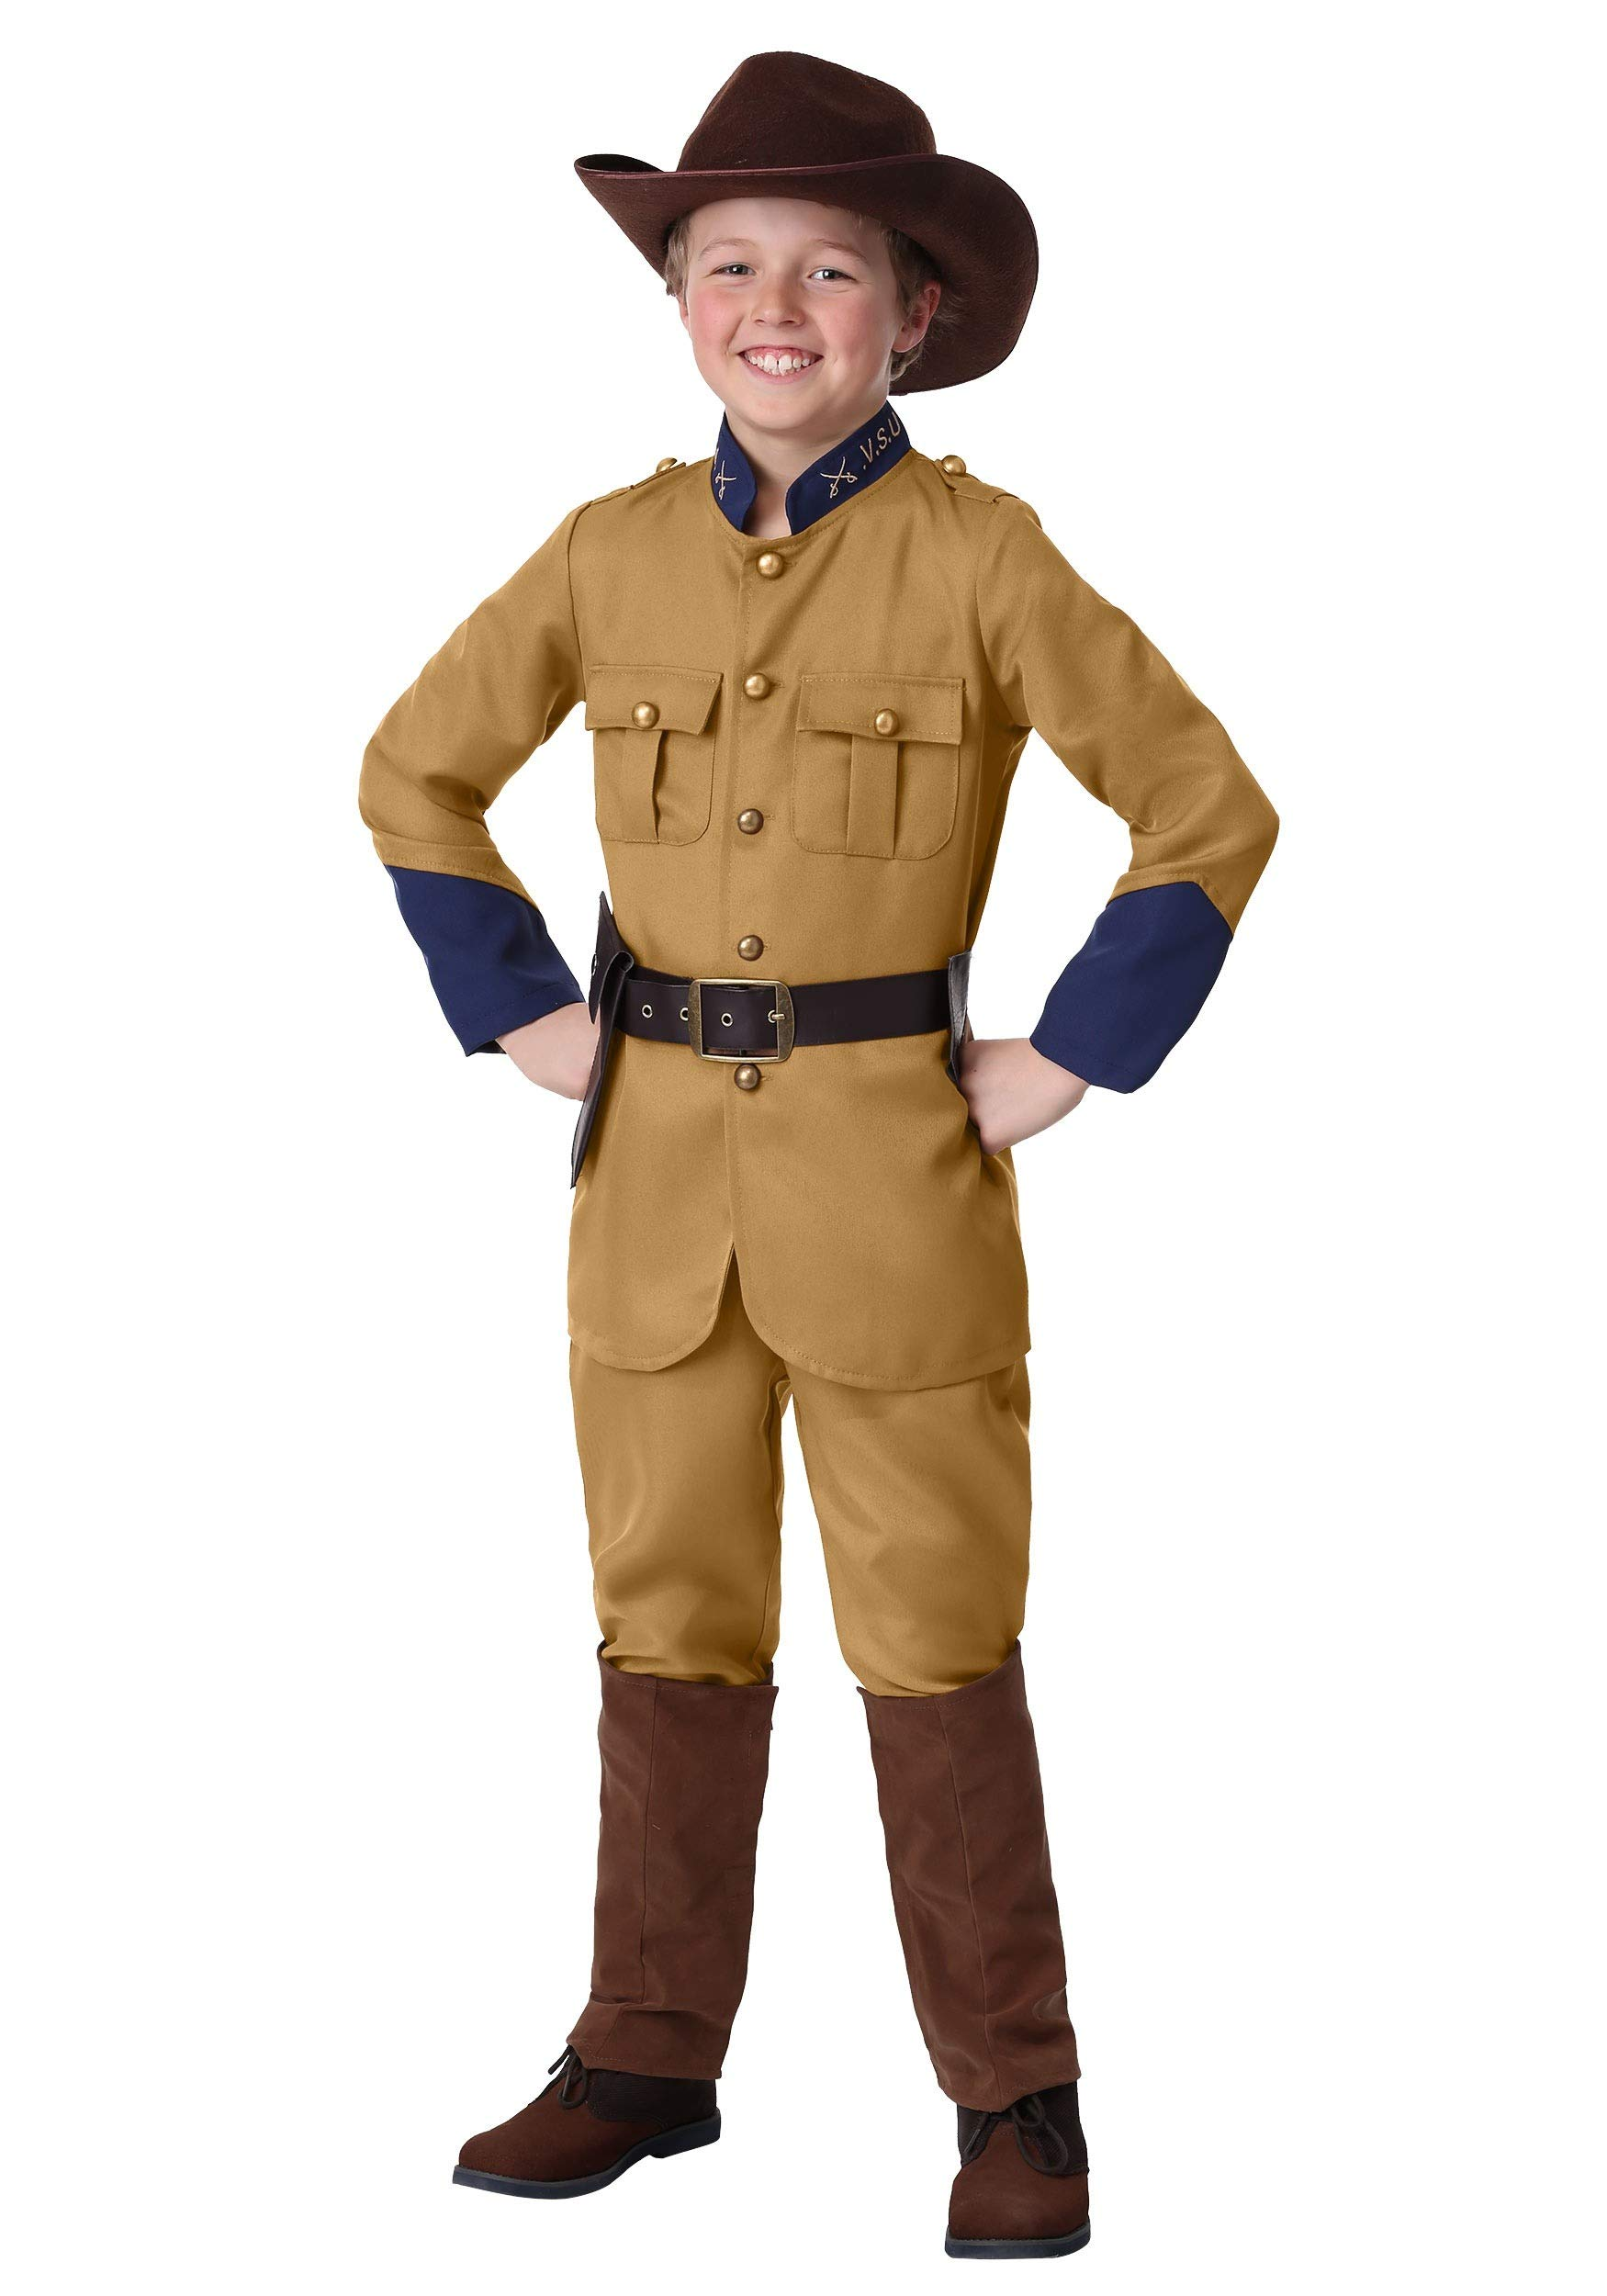 Boy's Teddy Roosevelt Costume Small by Fun Costumes